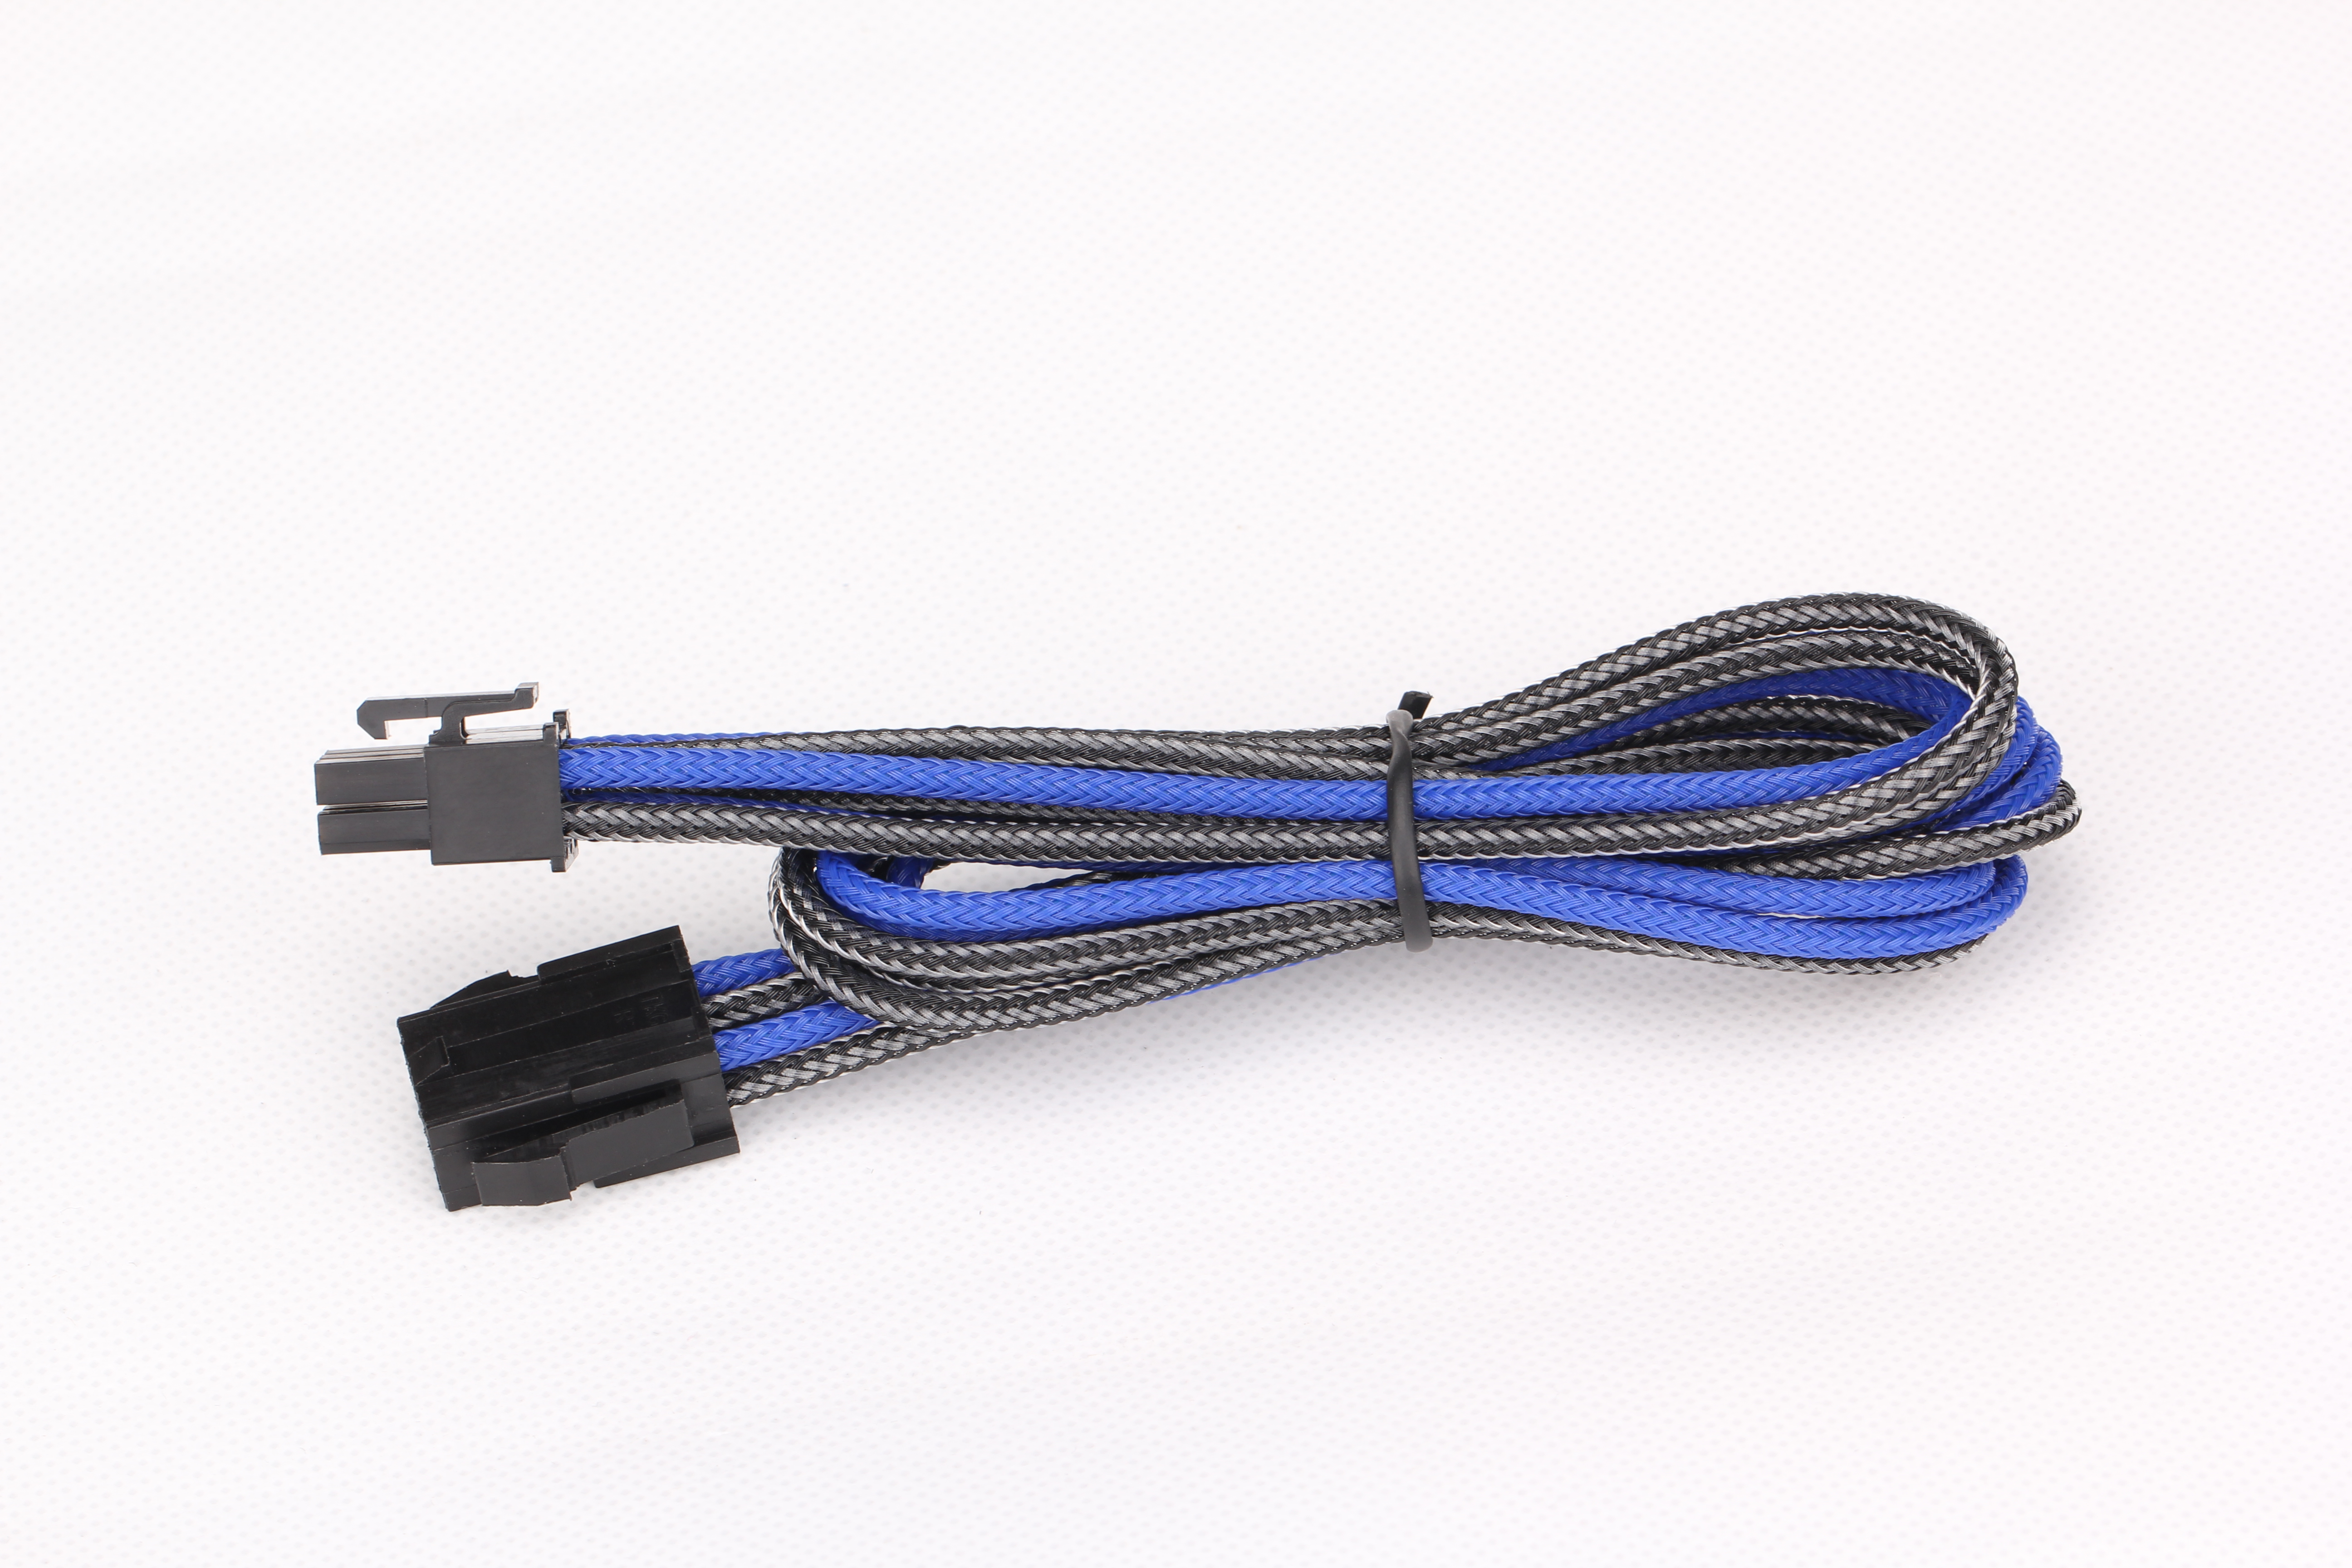 Pre sleeved 8Pin PCIe power cable